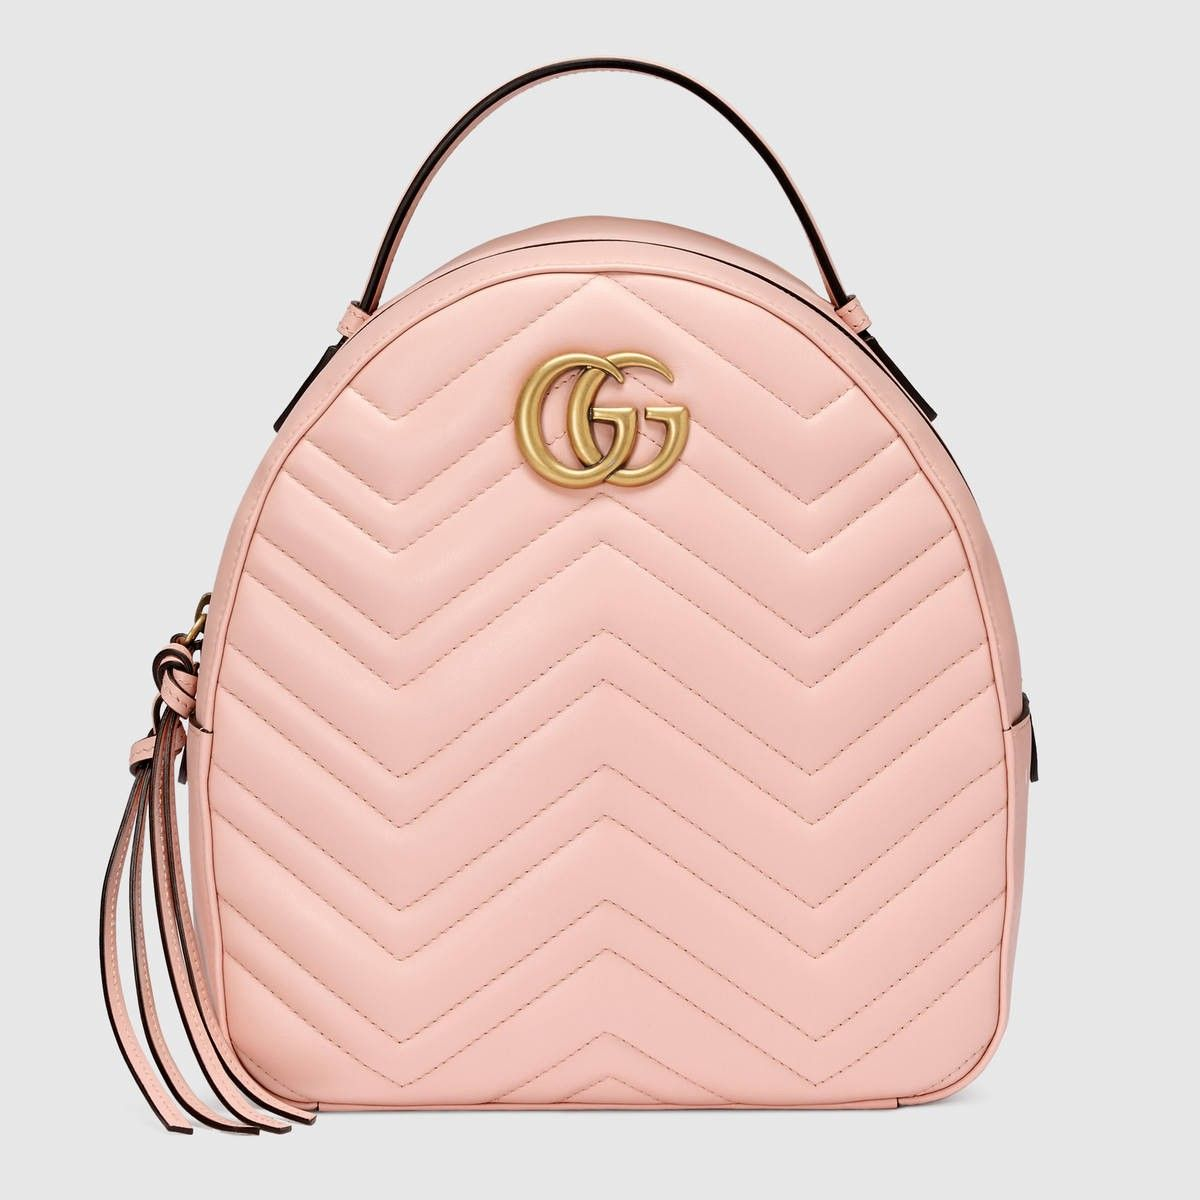 1aab01847b7a GUCCI GG Marmont quilted leather backpack - light pink chevron leather.   gucci  bags  lining  backpacks  suede